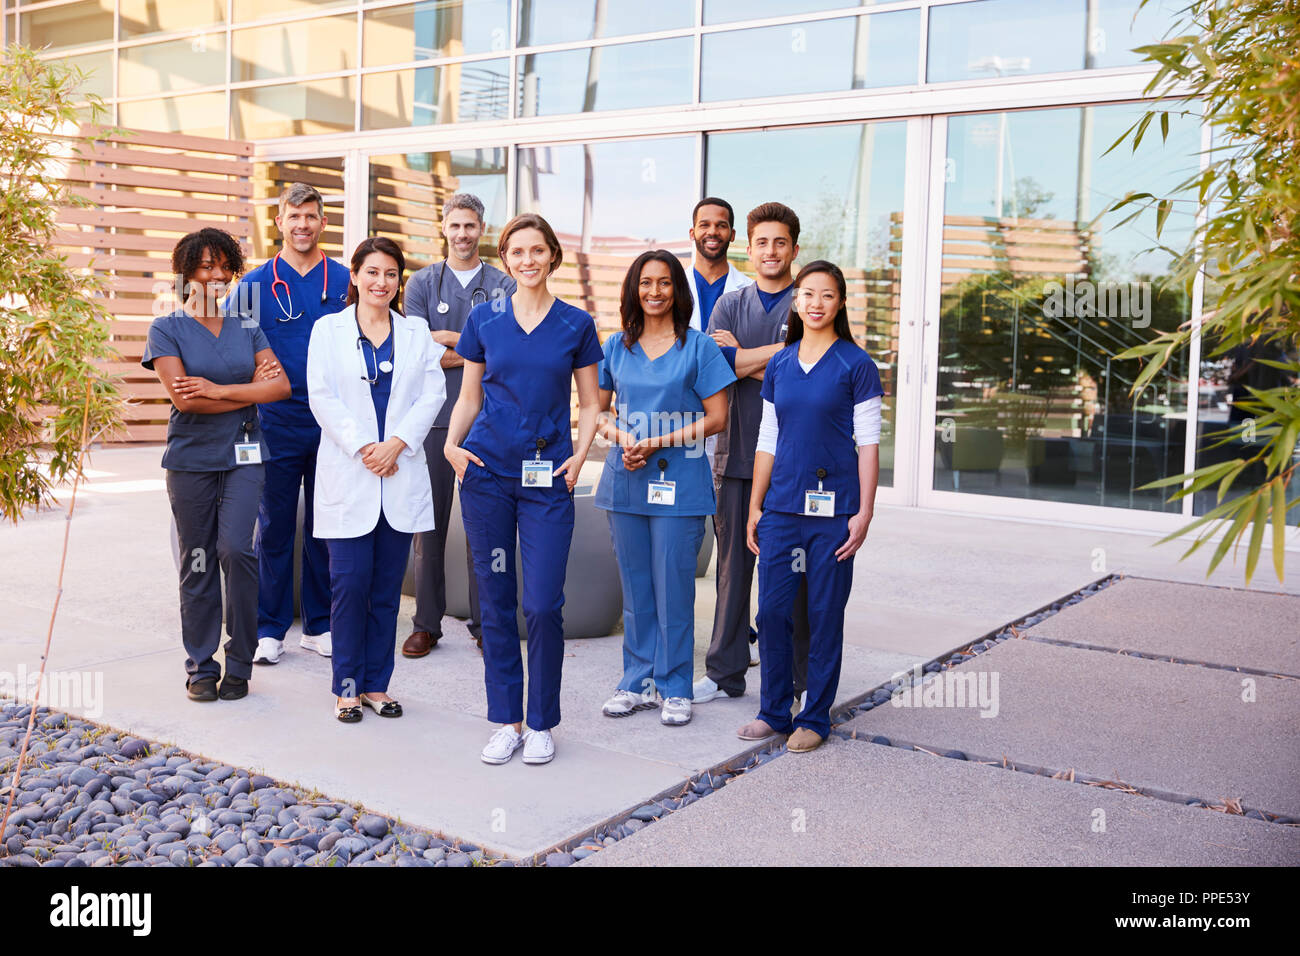 healthcare team with id badges stand outdoors full length stock